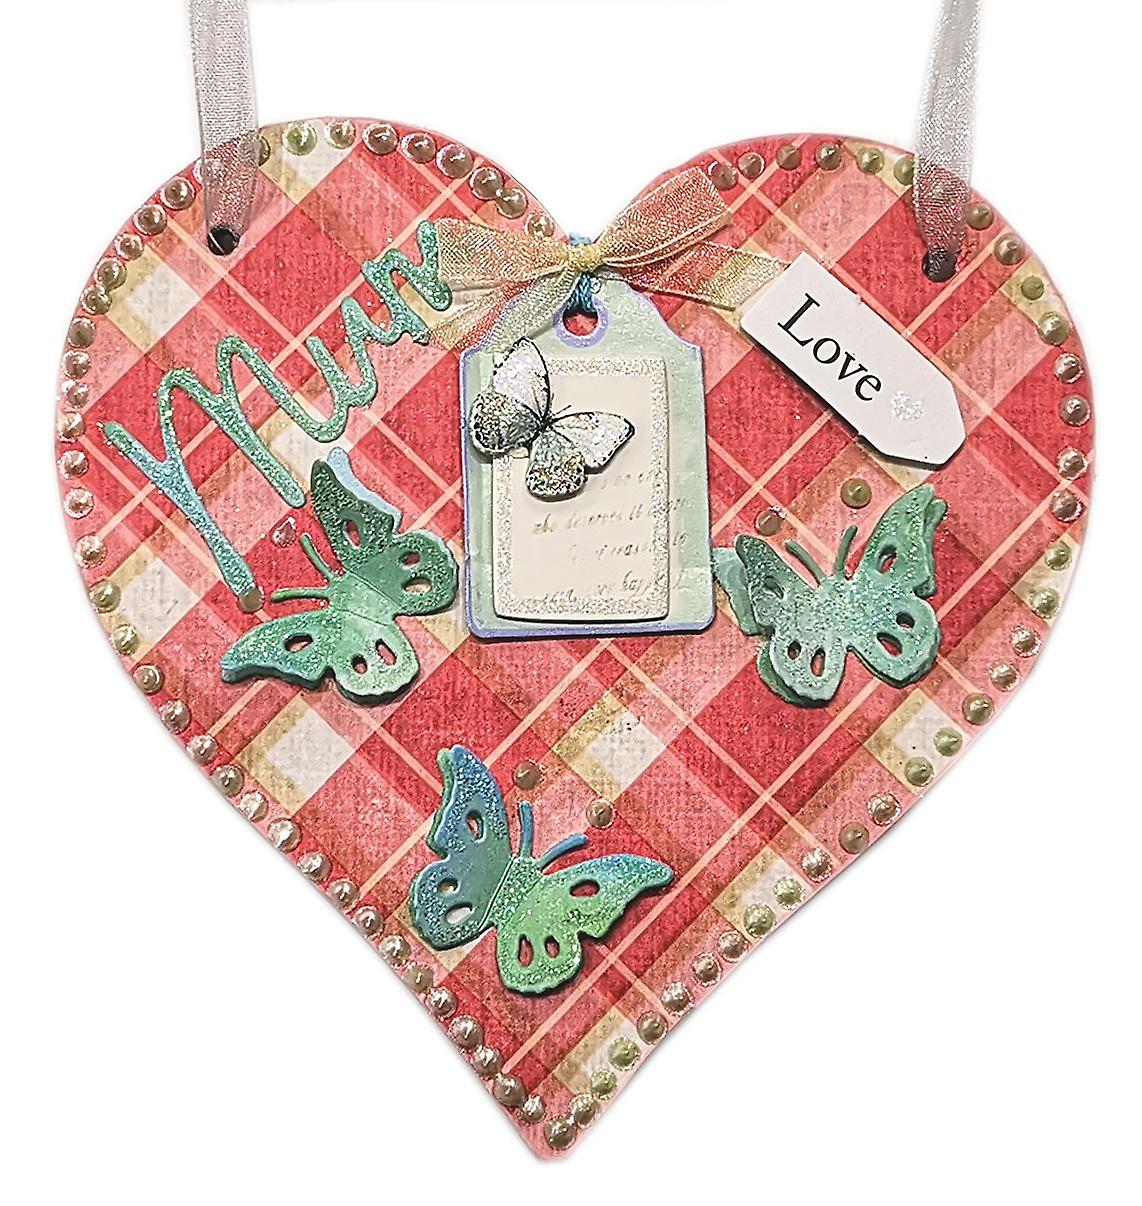 Lilypond Crafts & Gifts Mother's Day Hanging Heart Wall Plaque